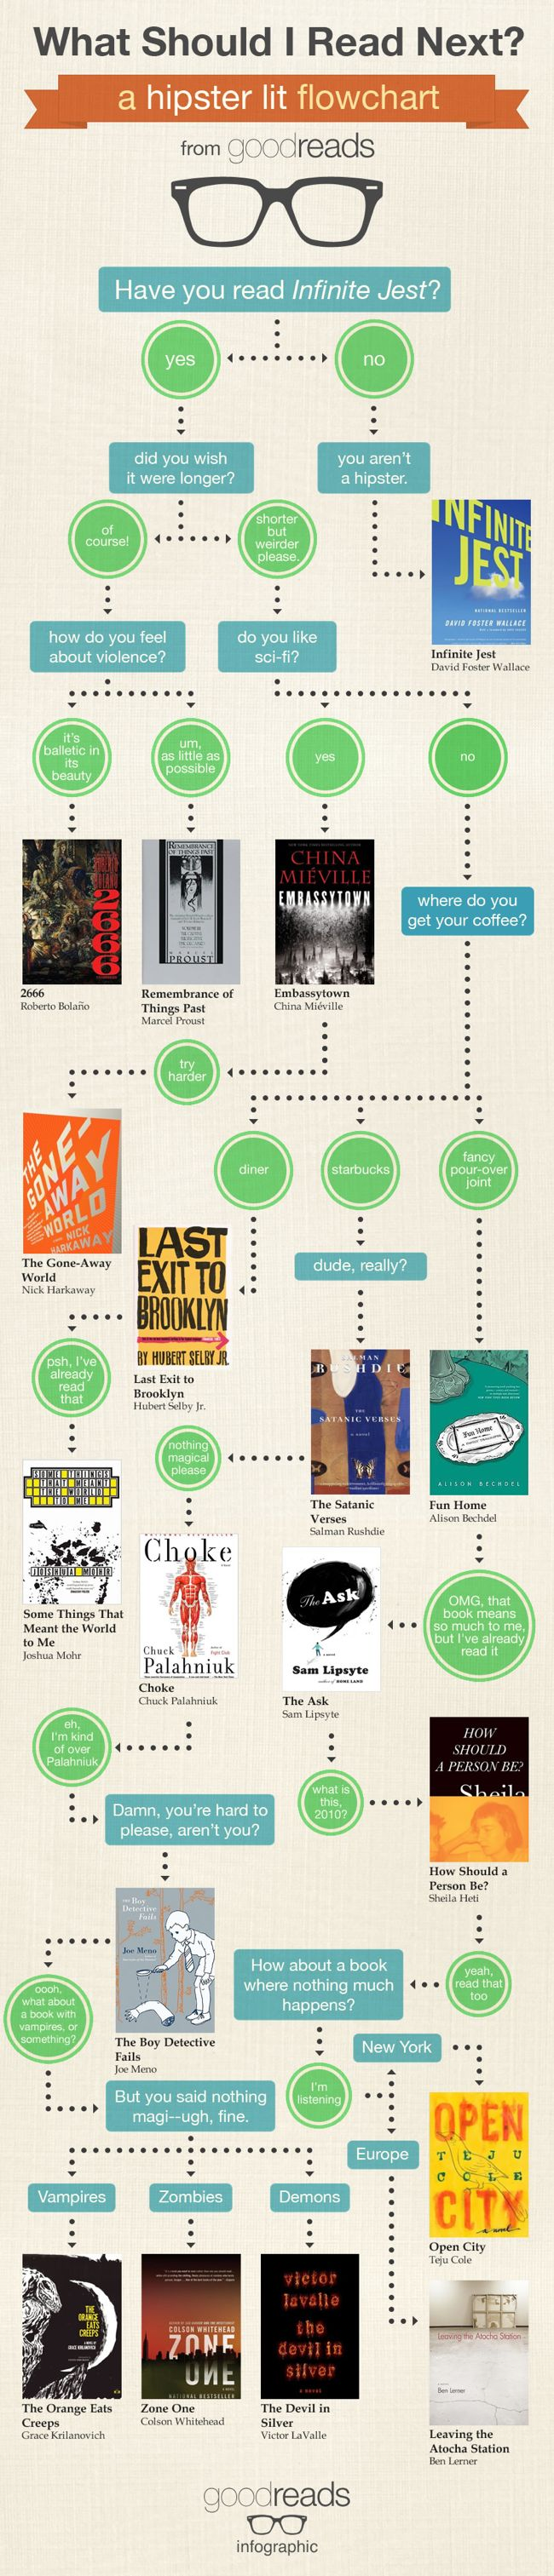 What Should I Read Next? The Hipster Lit Flow Chart